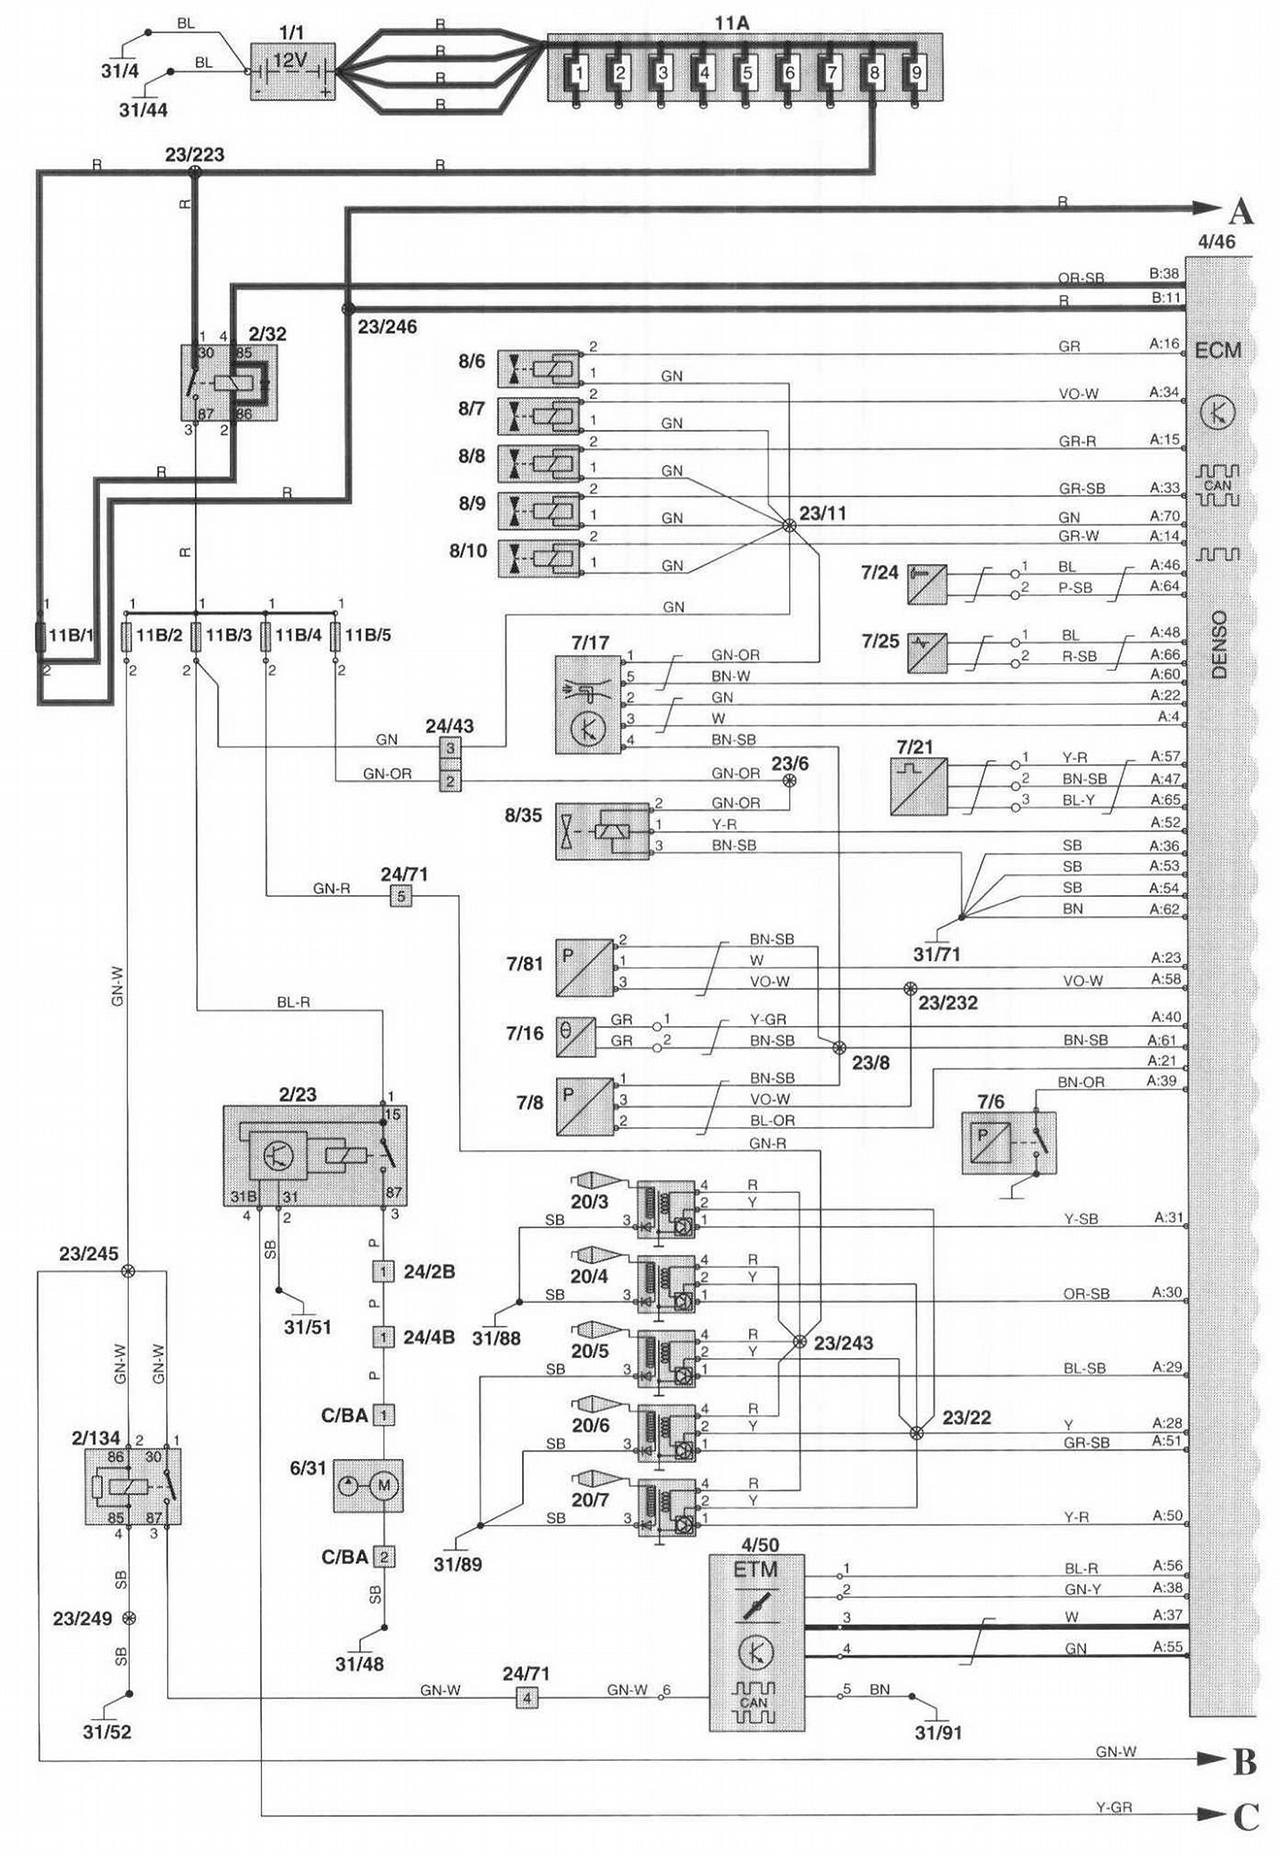 1998 volvo v70 fuse diagram wiring diagram schematics98 volvo s70 fuse diagram wiring diagram 1998 volvo v70 interior 1998 volvo v70 fuse diagram